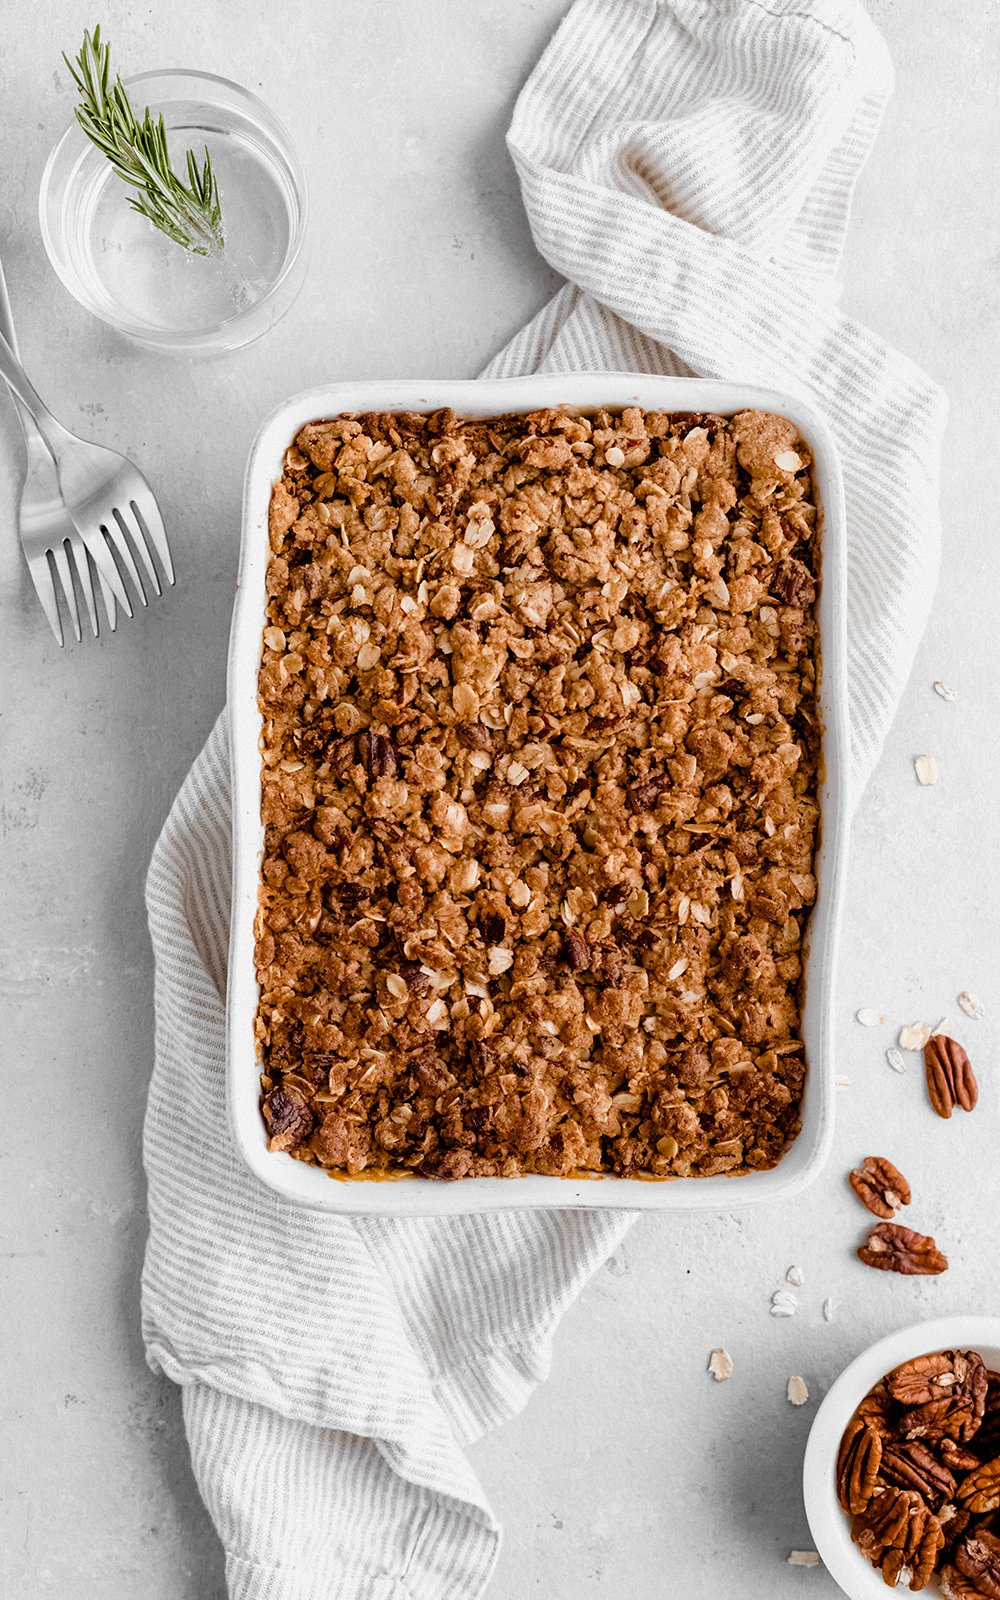 healthy sweet potato casserole in a baking dish on top of a white linen